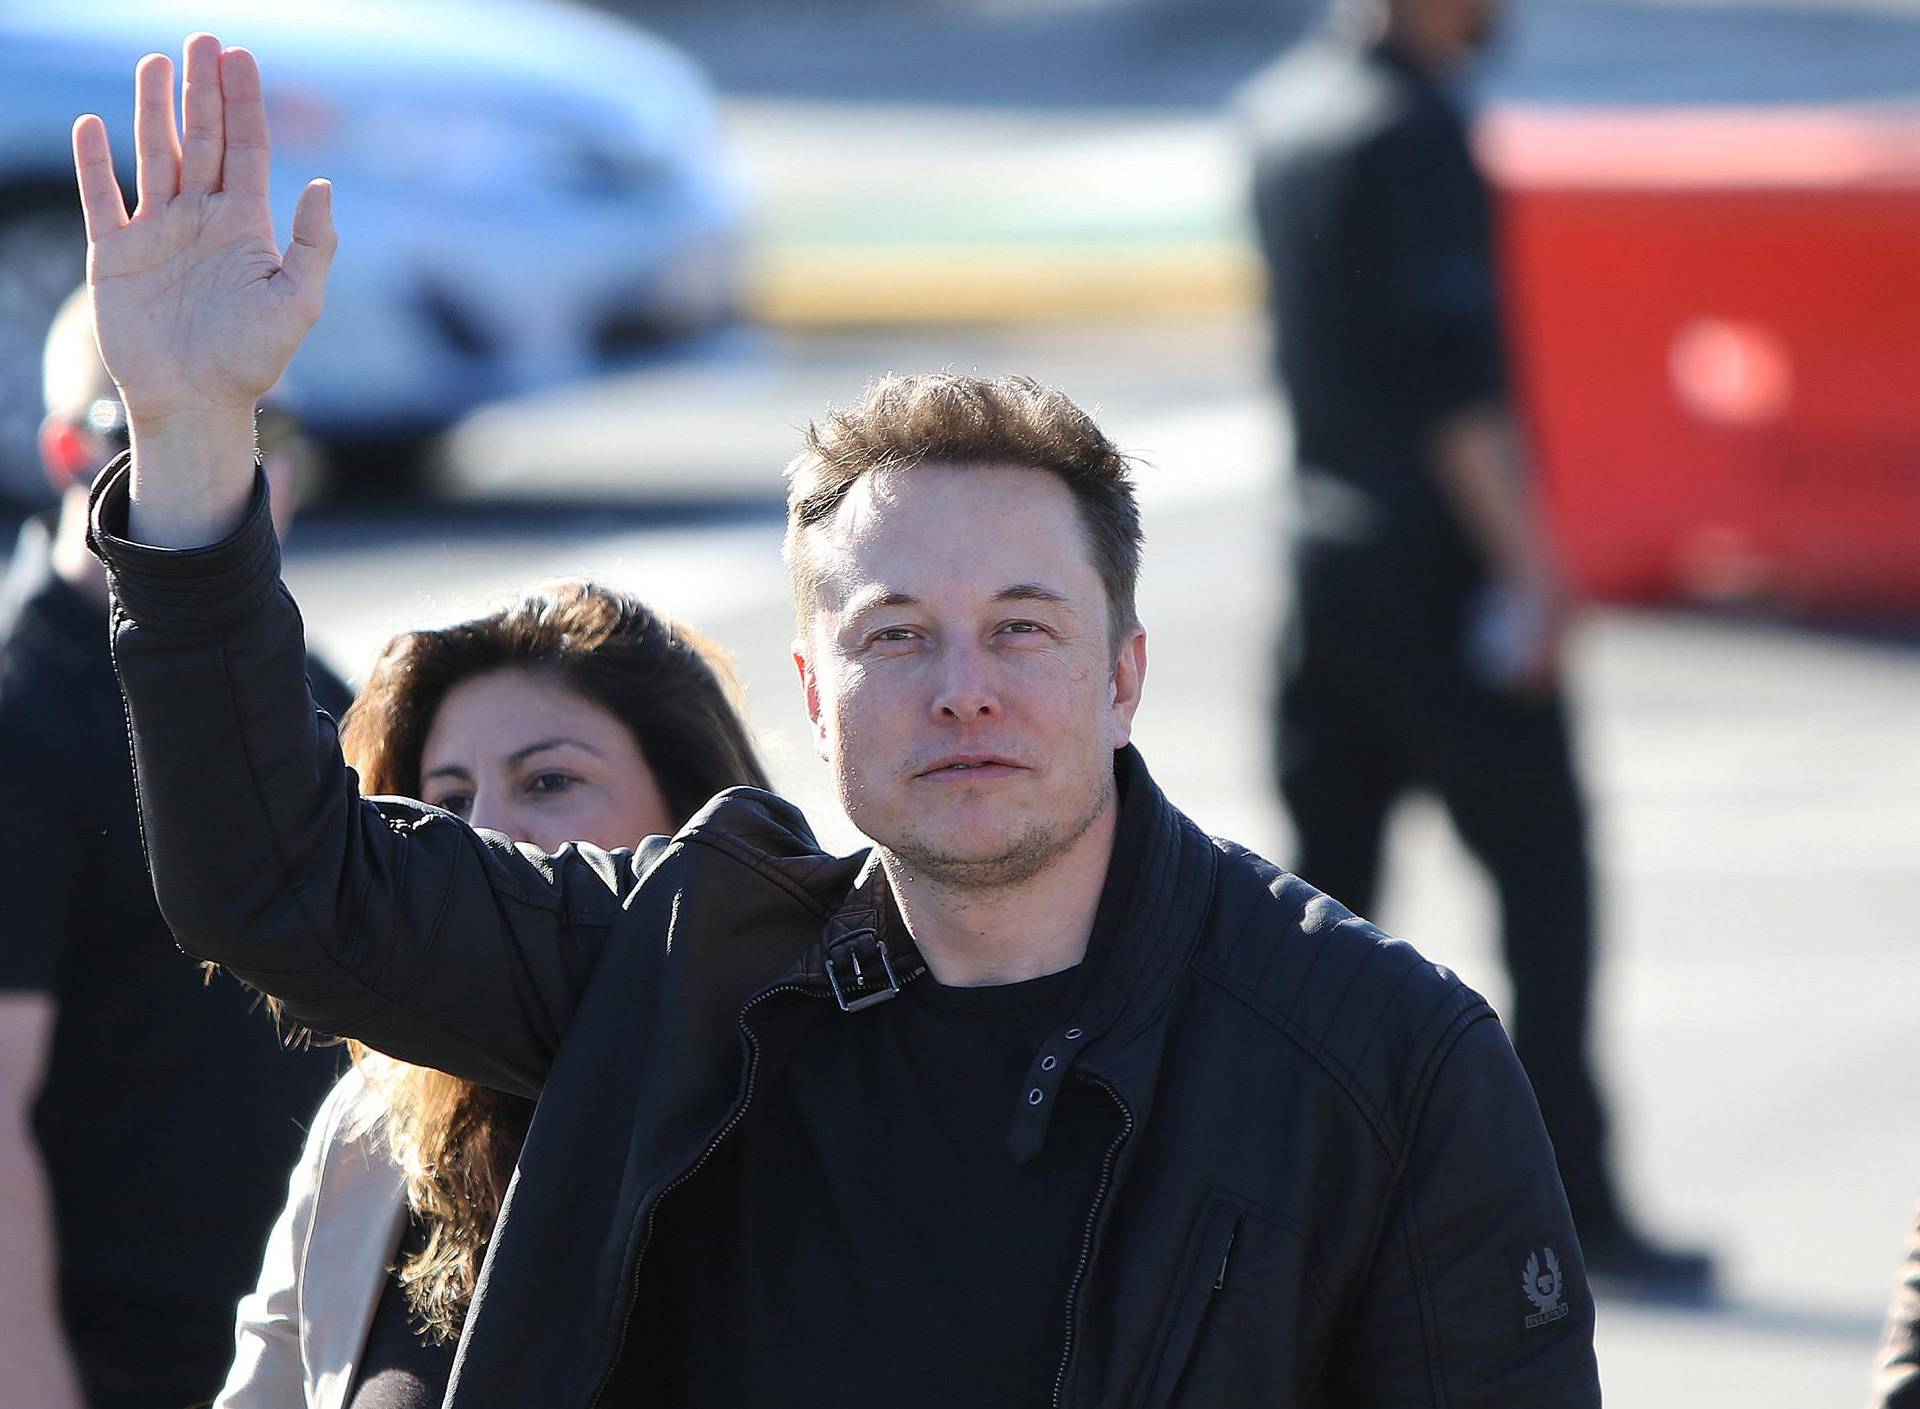 Elon Musk, founder and CEO of SpaceX arrives with Los Angeles Mayor Eric Garrett for the SpaceX Hyperloop Pod Competition in Hawthorne, Los Angeles